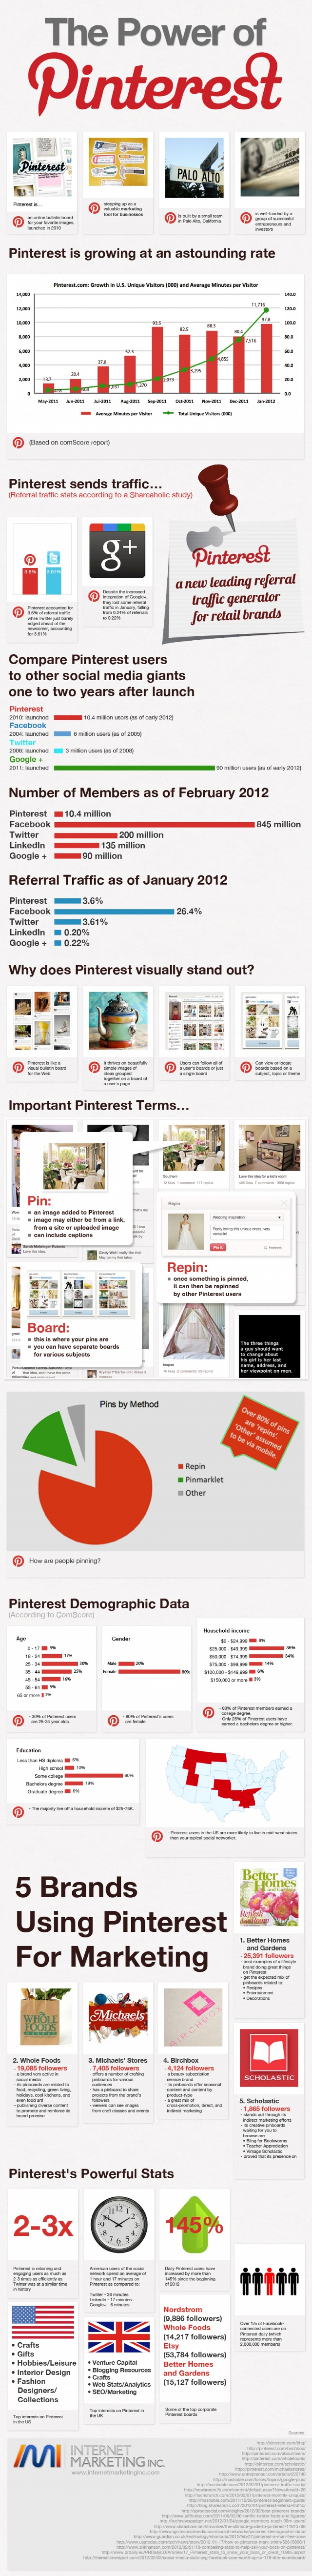 Pinterest Data You Can't Ignore: The Ultimate Guide to Pinterest Infographic